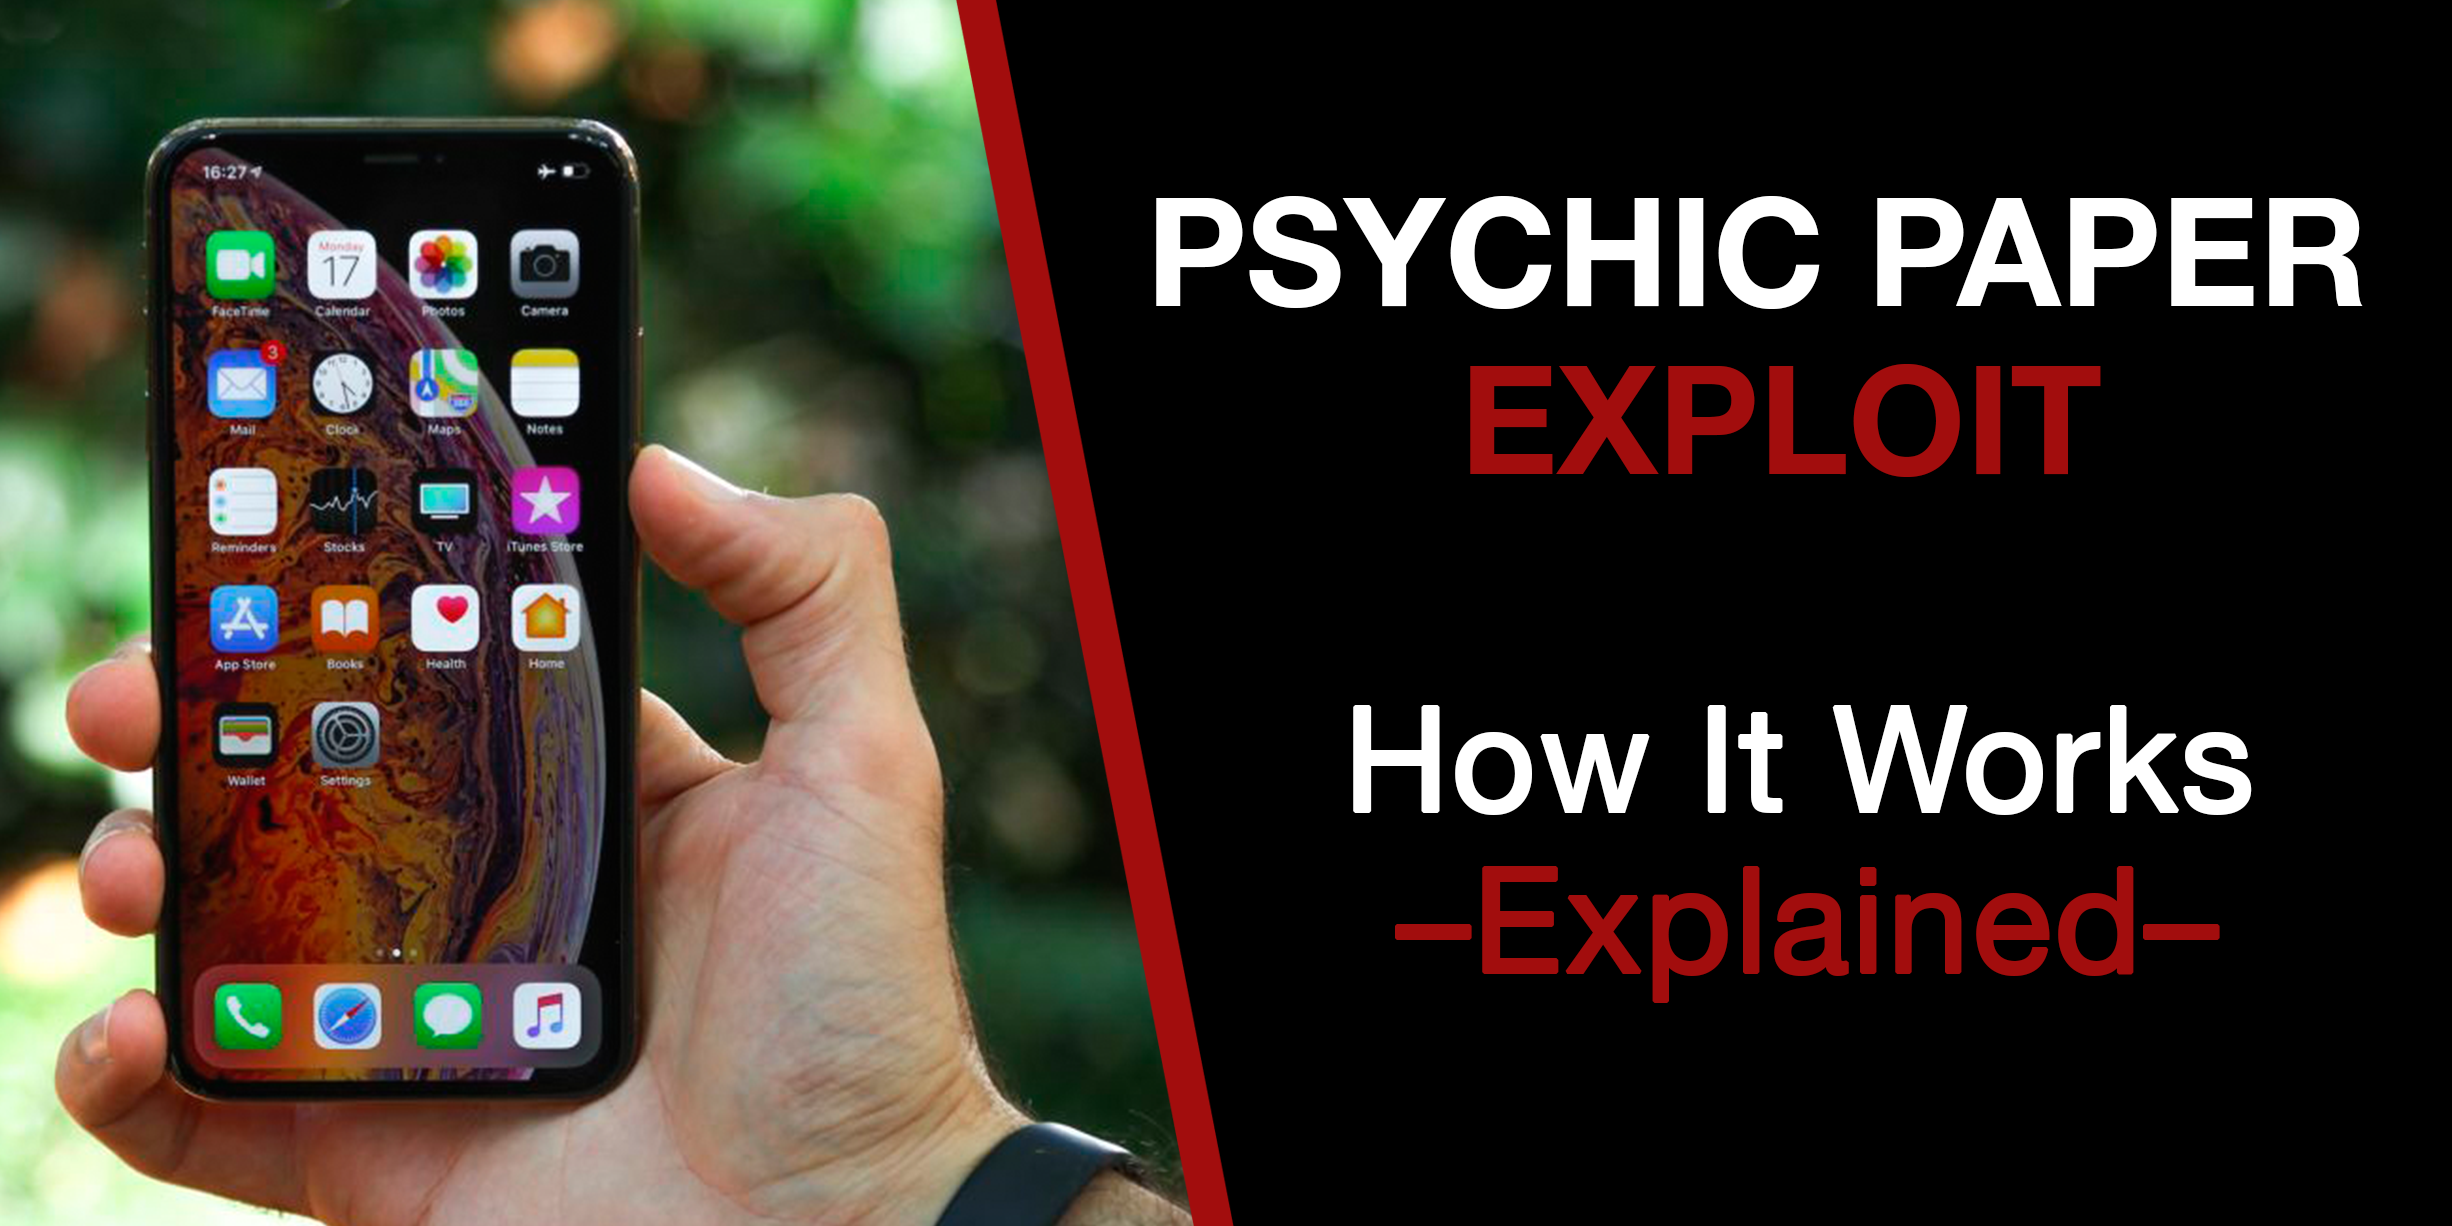 New Zero-Day Psychic Paper Exploit Allows Access to your Entire iPhone